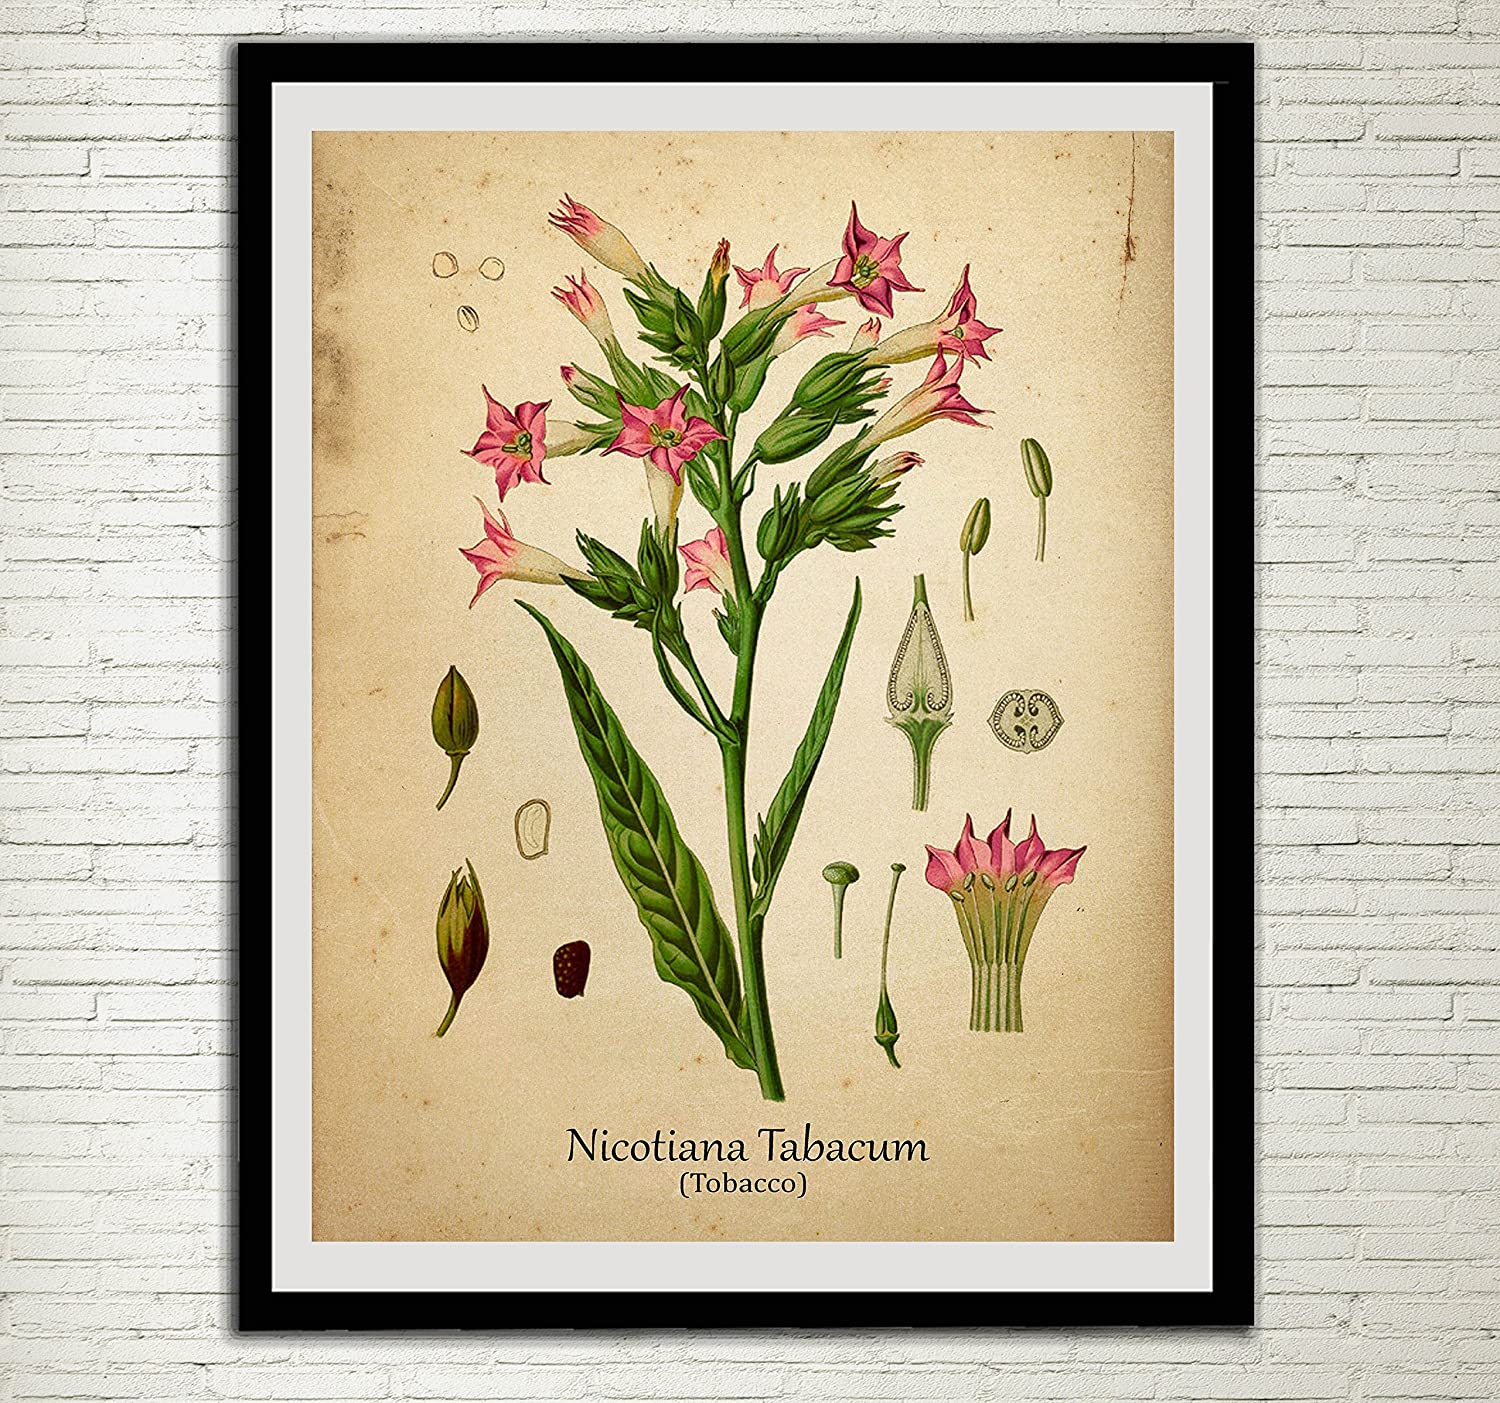 VINTAGE BOTANICAL POSTERS PRINTS A4 A3 A2 Poster Wall Art Home Flower Decor